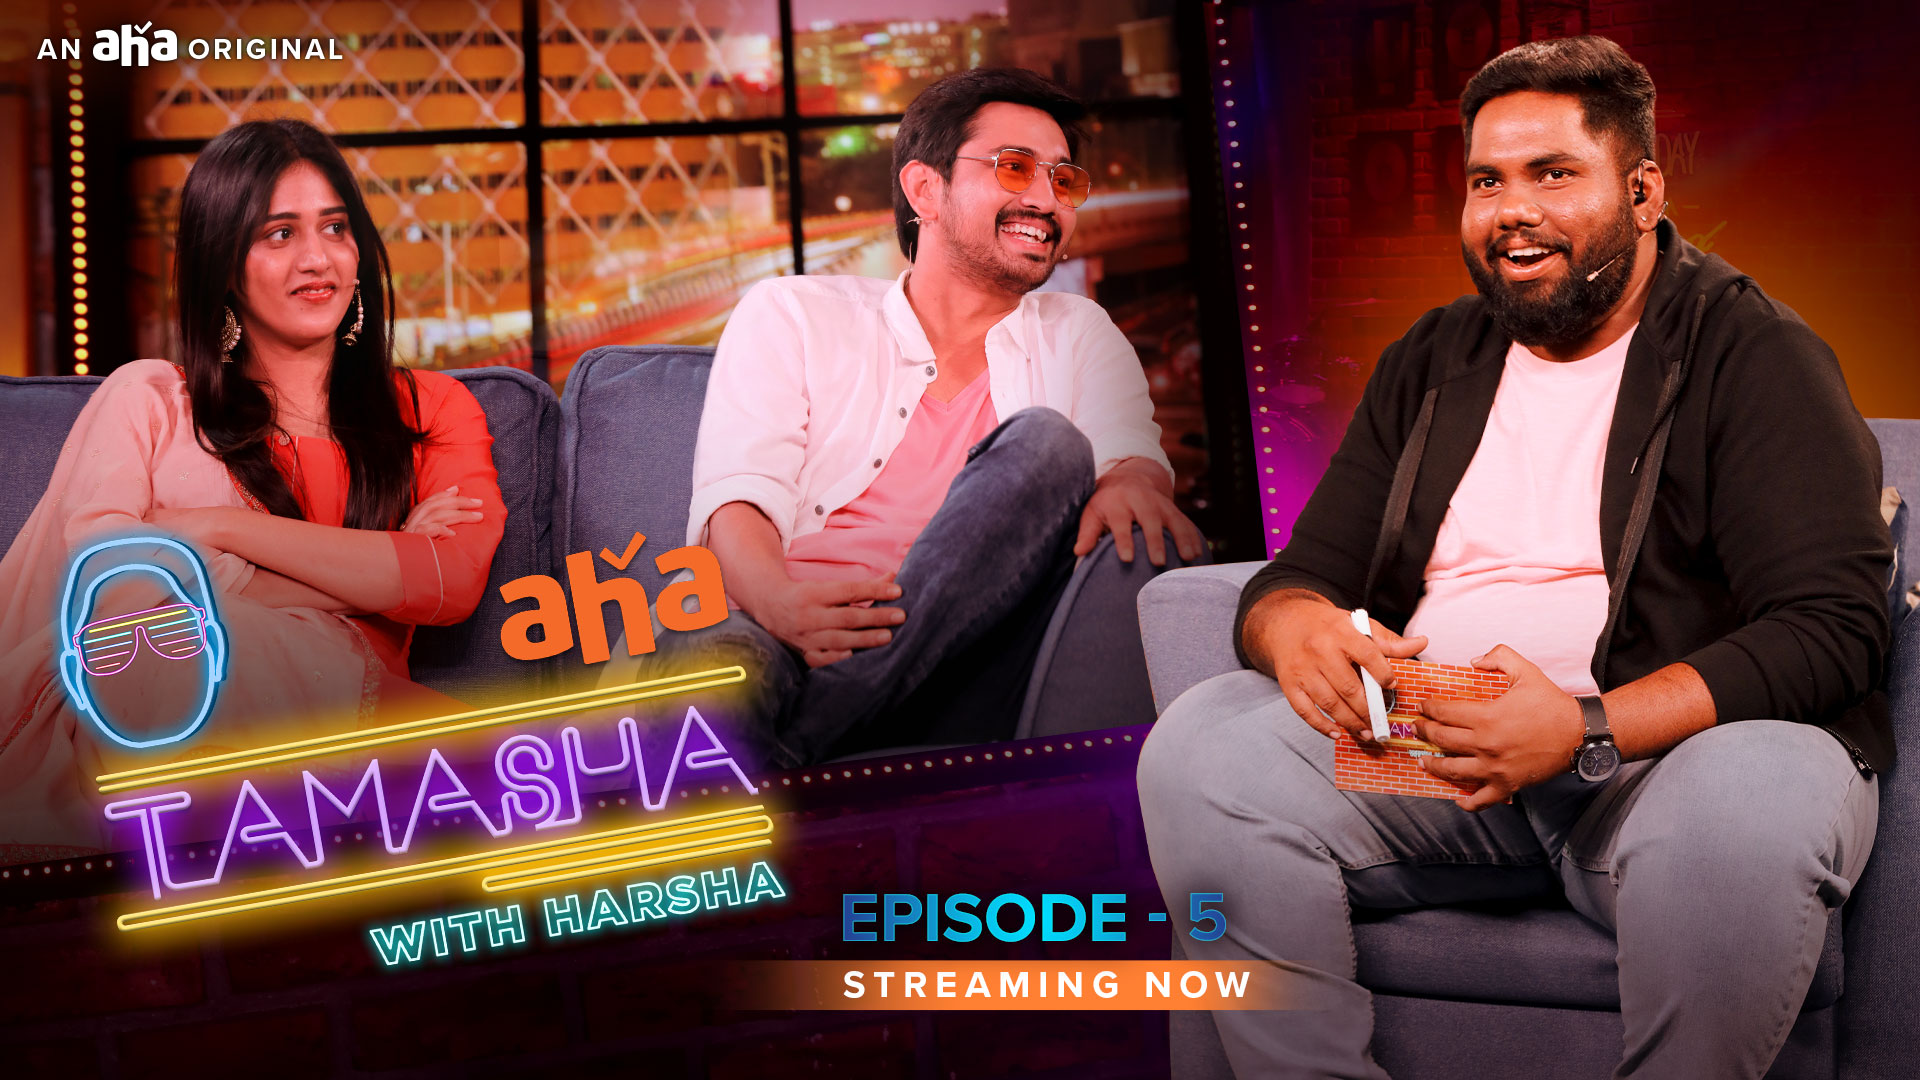 Watch Tamasha With Harsha Web Series Online In Hd Quality 1080 P